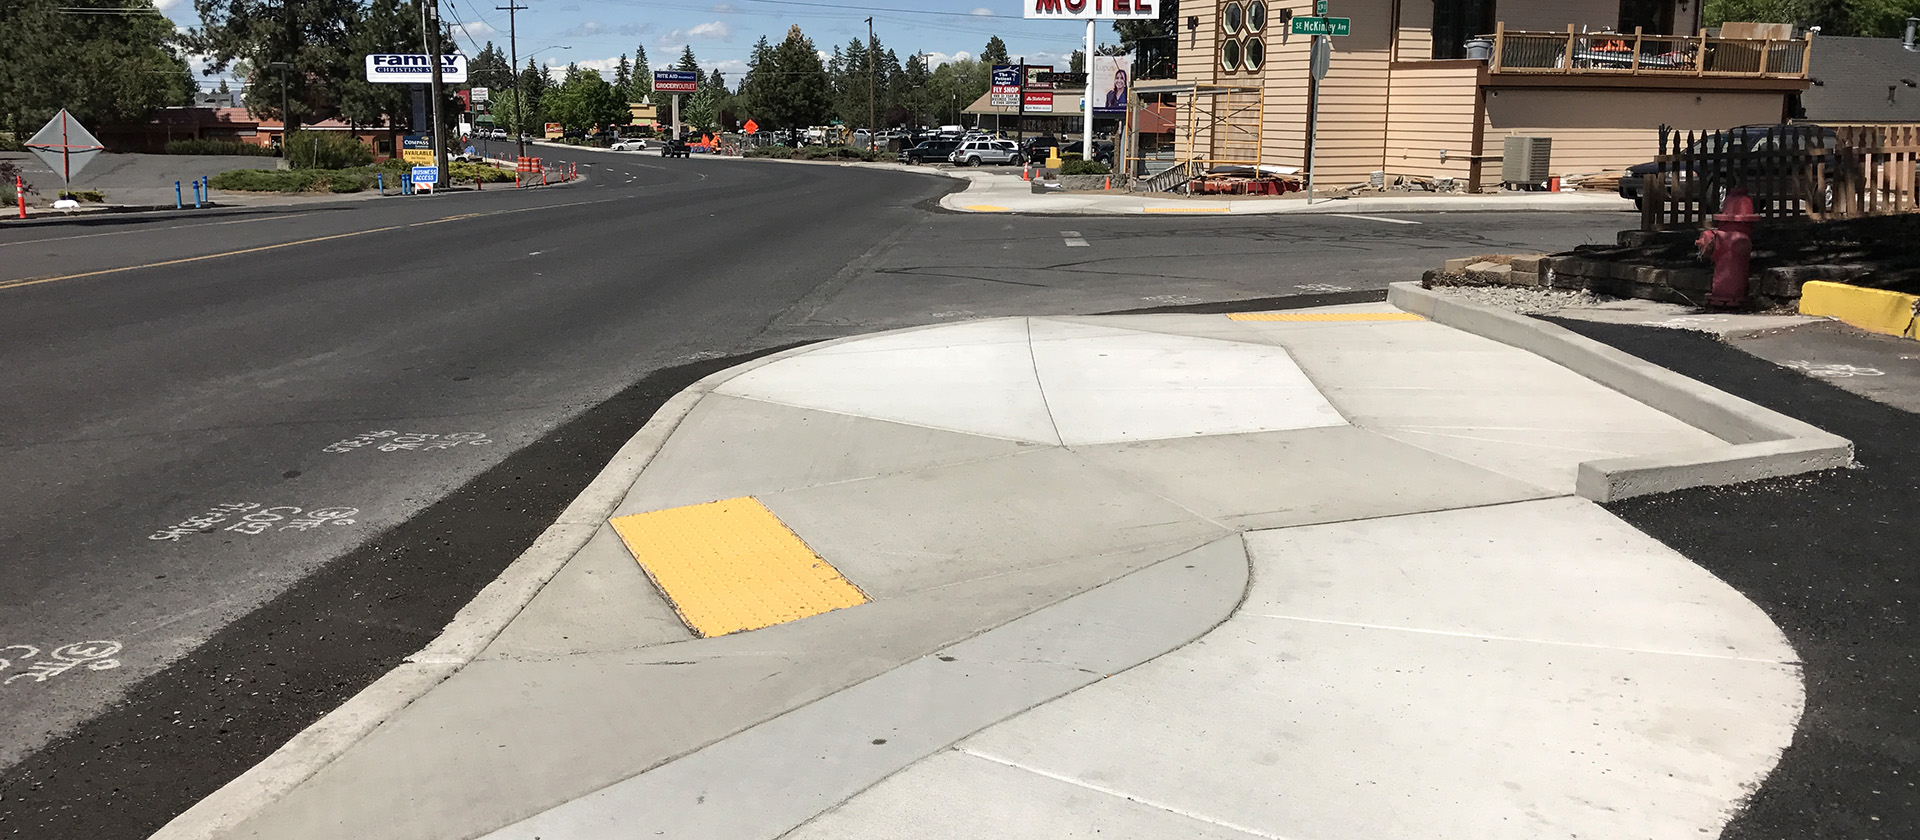 New sidewalk on South Third Street that includes accessibility ramps